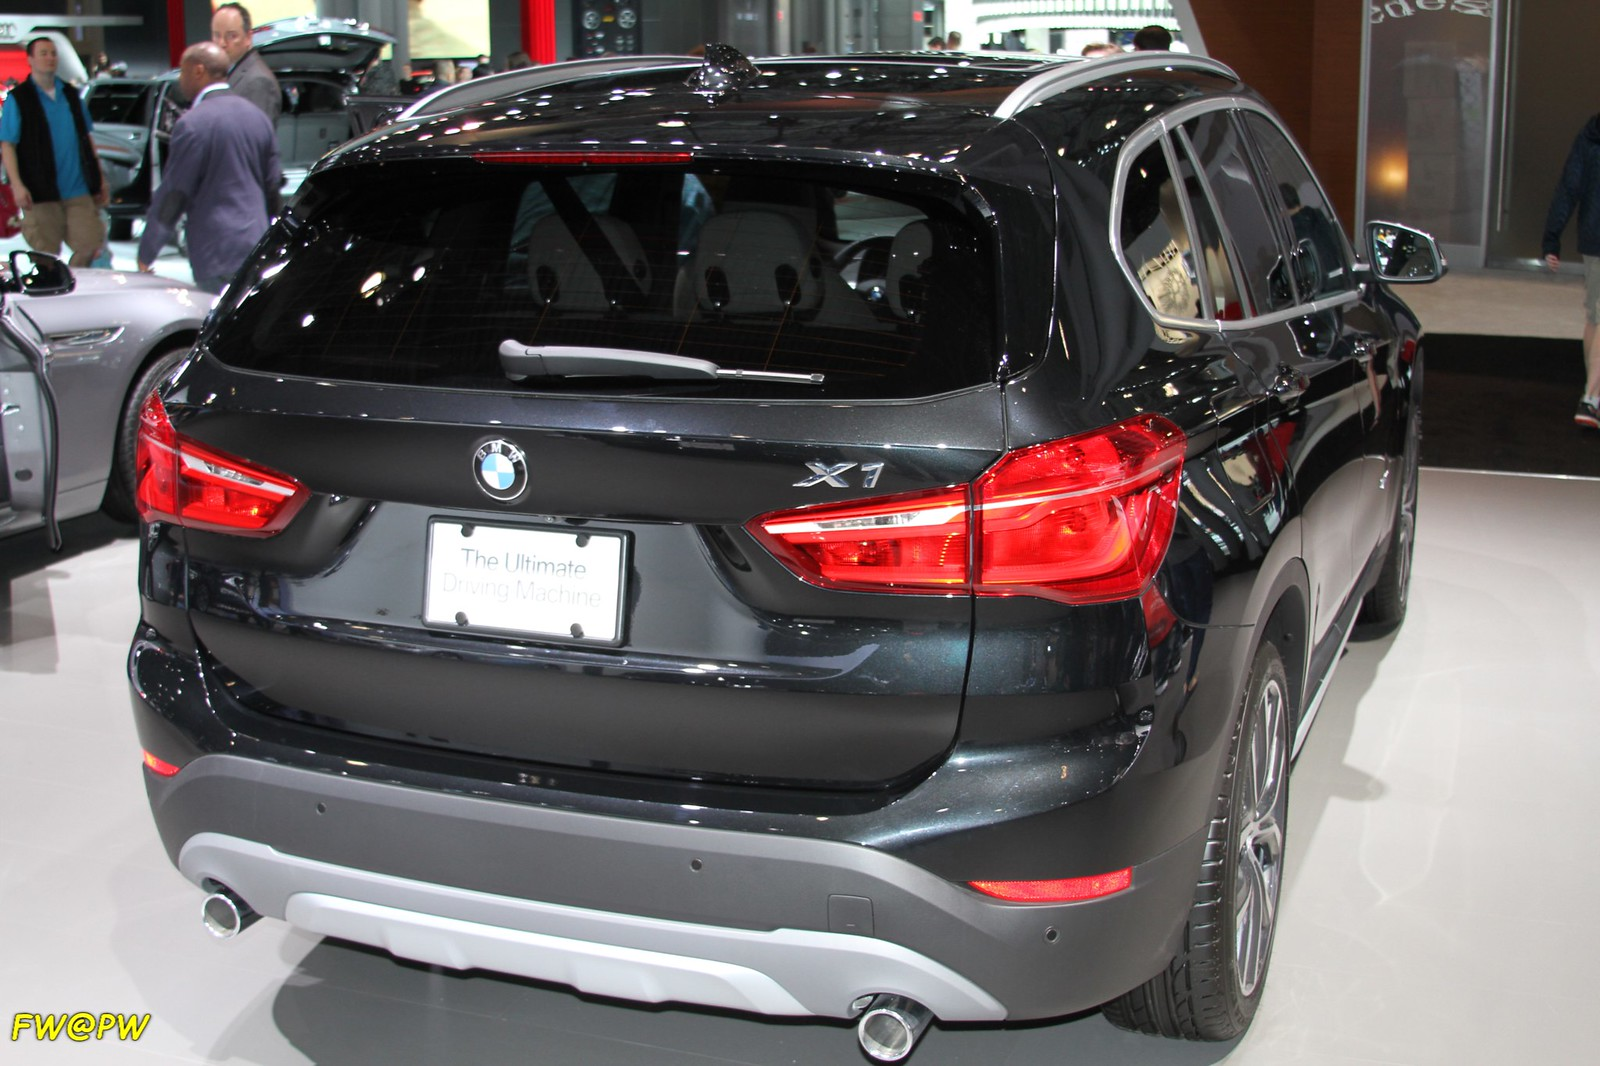 BMW X1 Launched in Pakistan. - 27016376995 2b9fb26a7d h